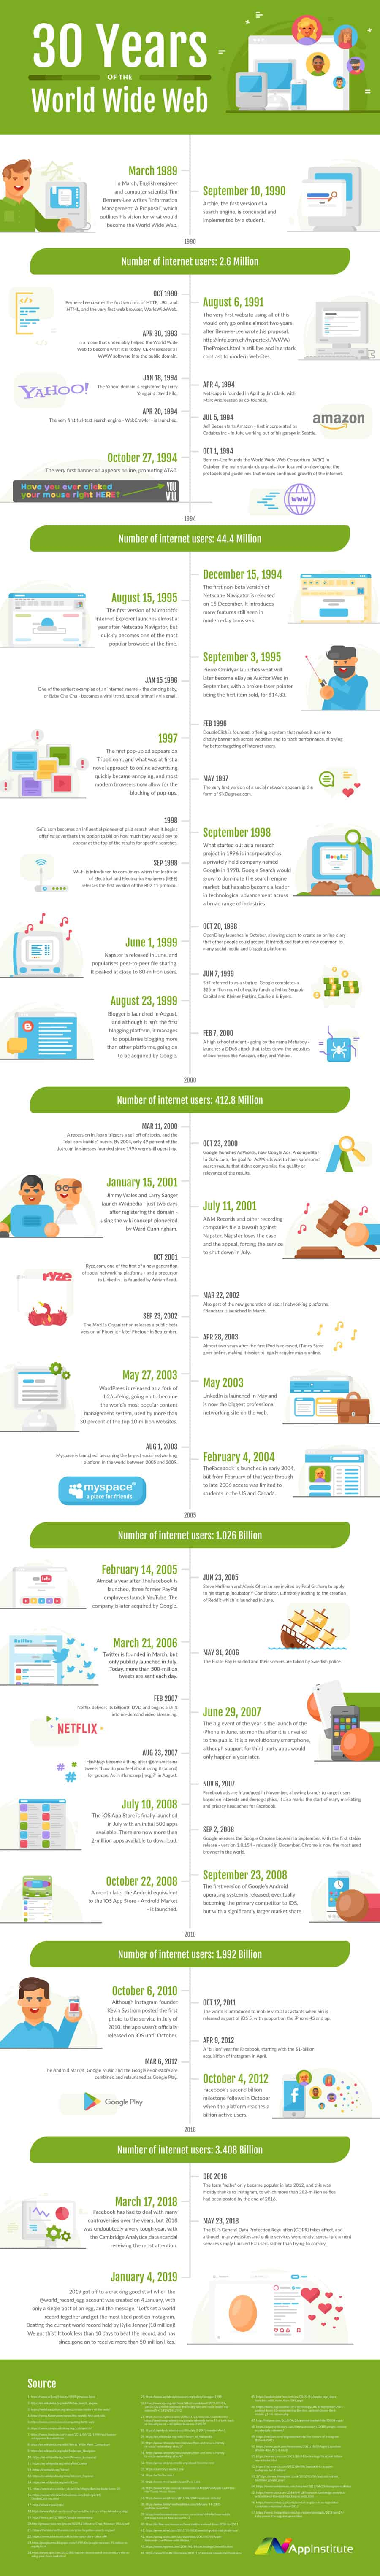 30 years of world wide web